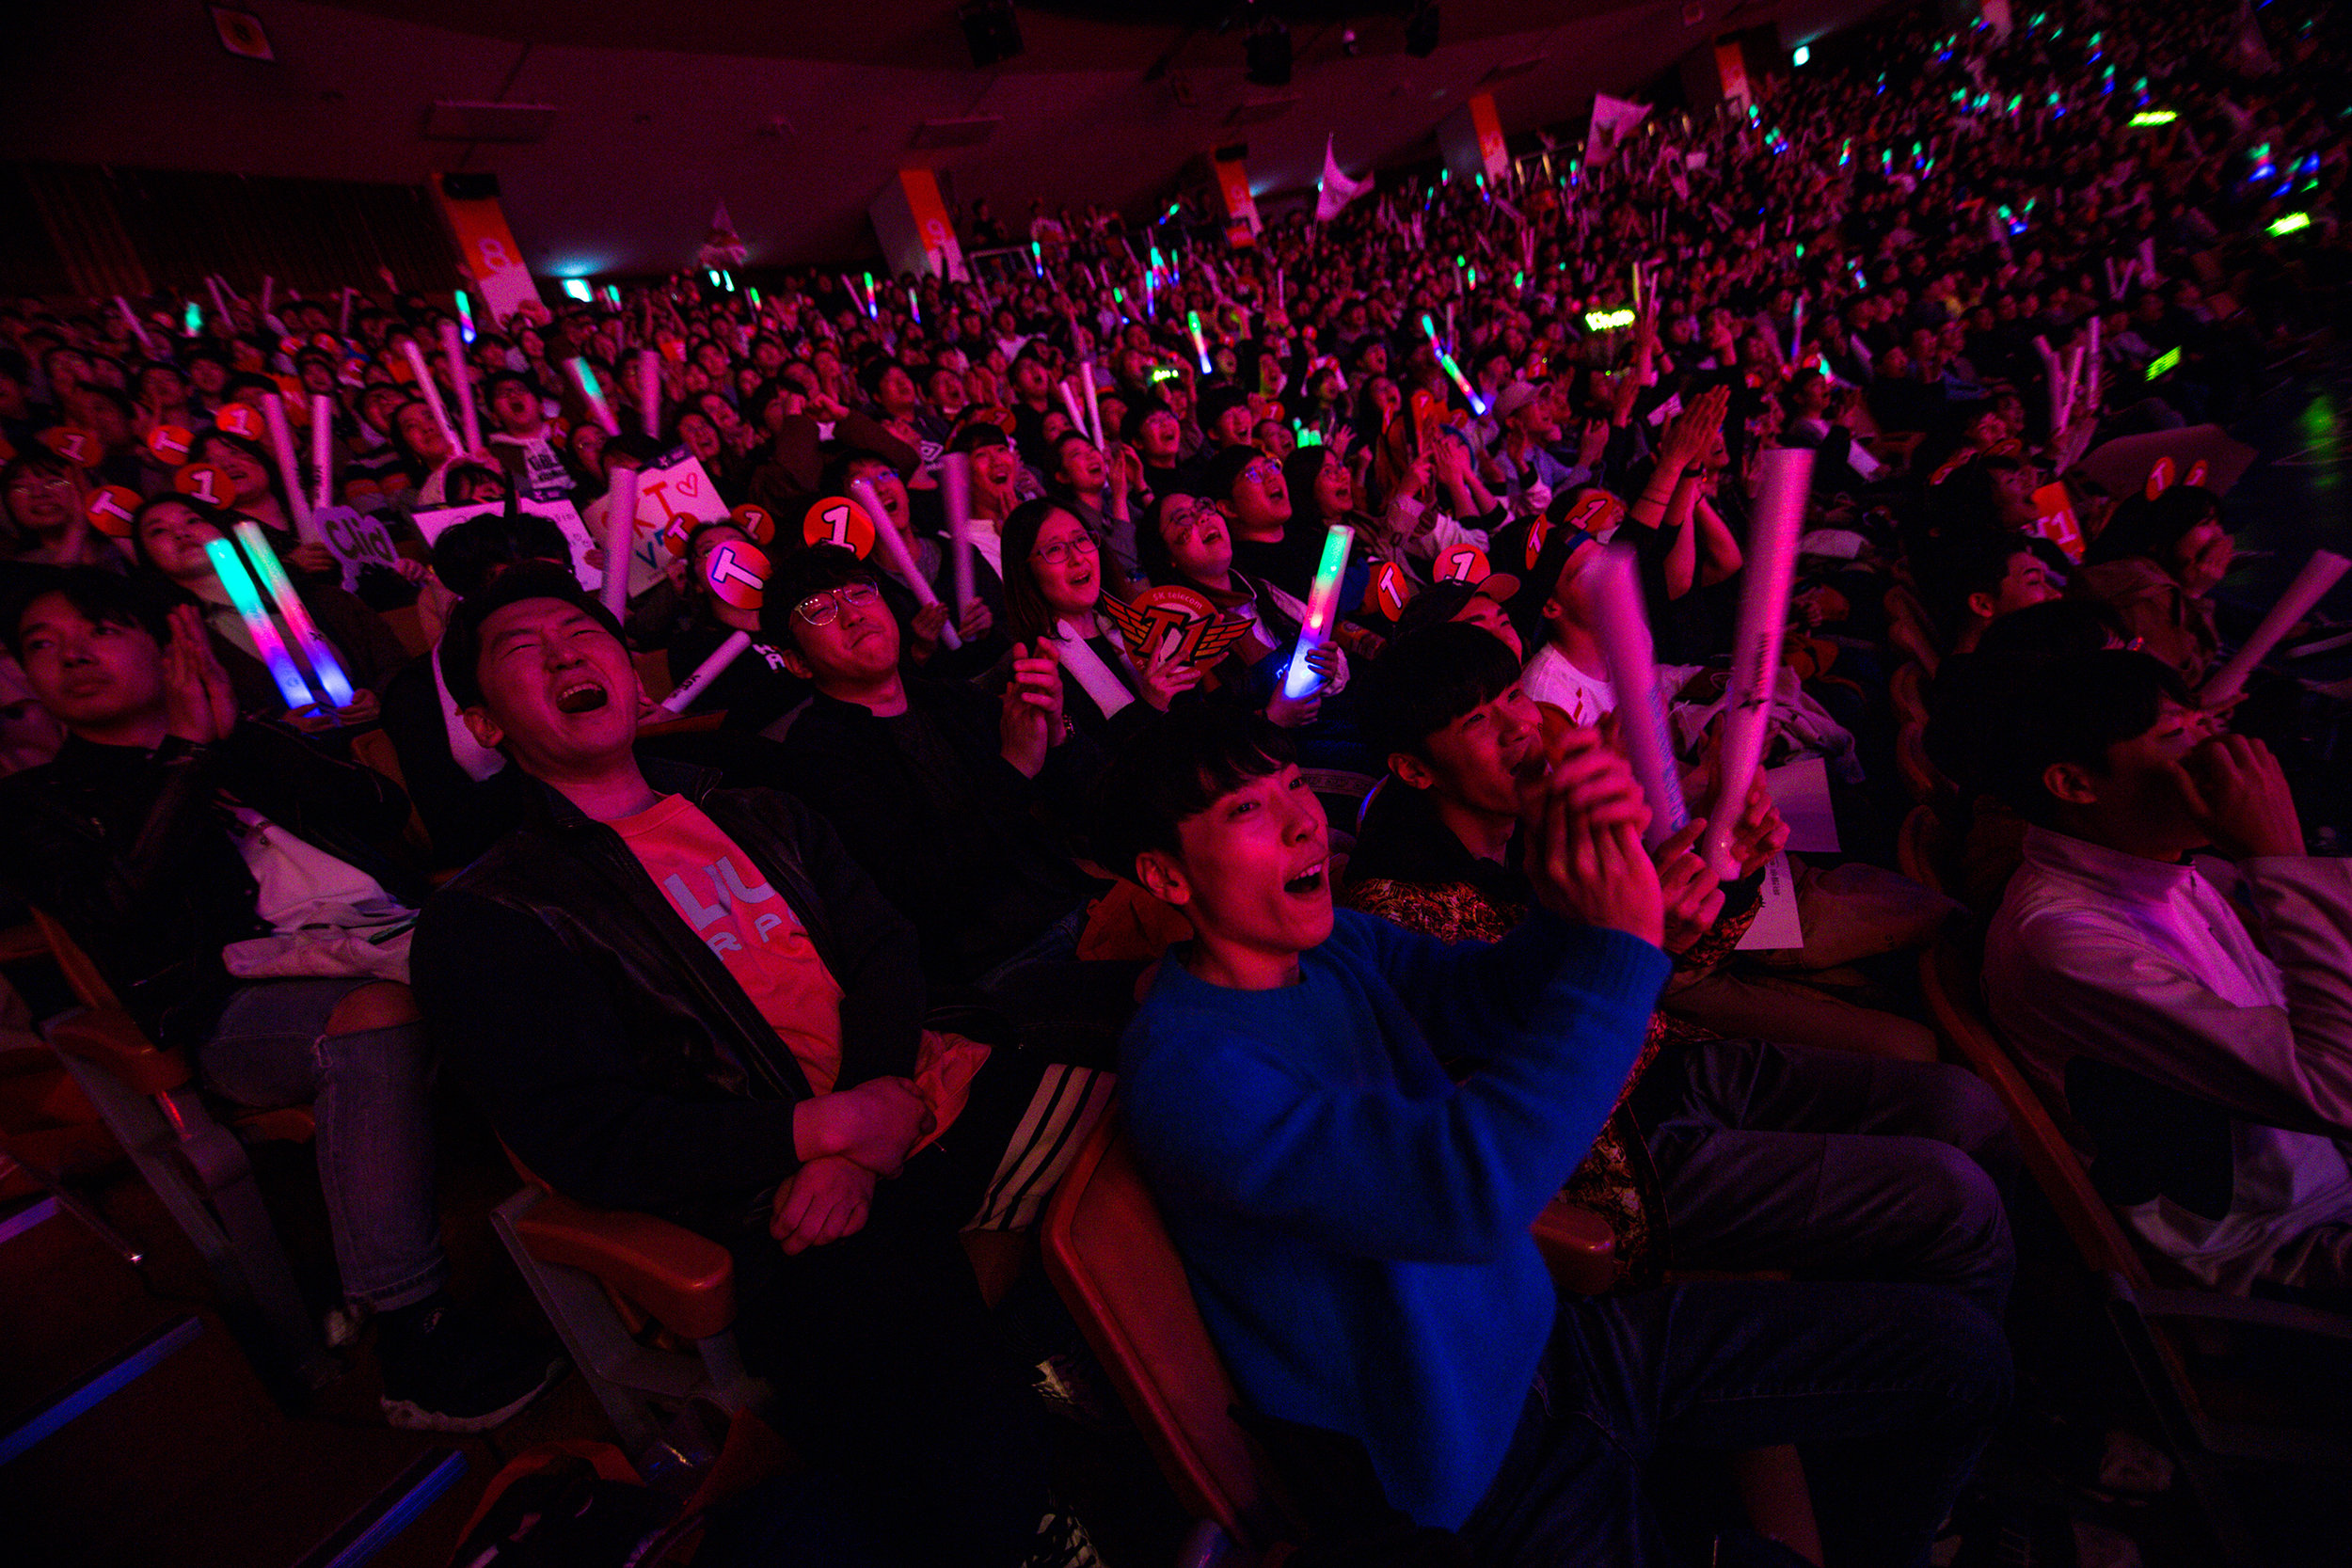 SEOUL, SOUTH KOREA - APRIL 13: Crowd cheering on their team as SK Telecom T1 wins 3-0 over Griffin at LCK Spring Finals at Jamsil Sports Center on April 13, 2019 in Seoul, Korea. Photo by Timo Verdeil/ESPAT Media